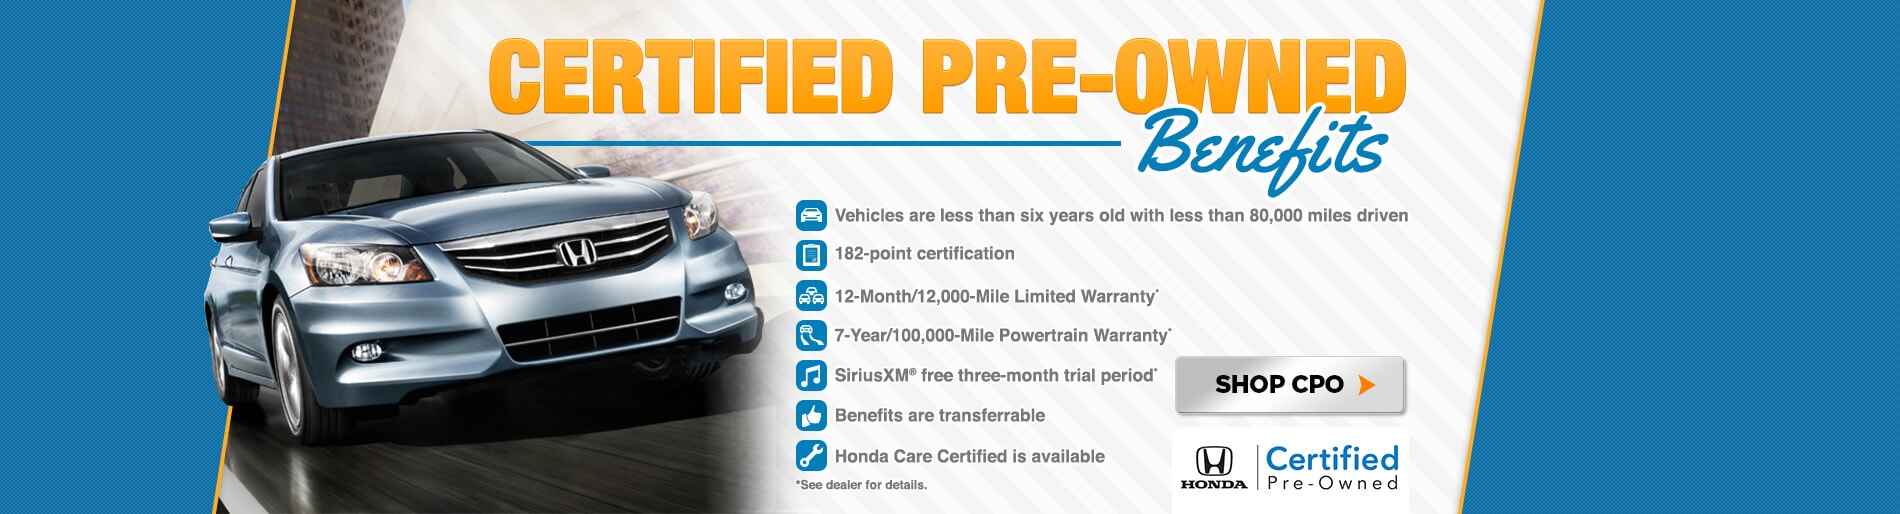 Certified Pre Owned Honda Benefits